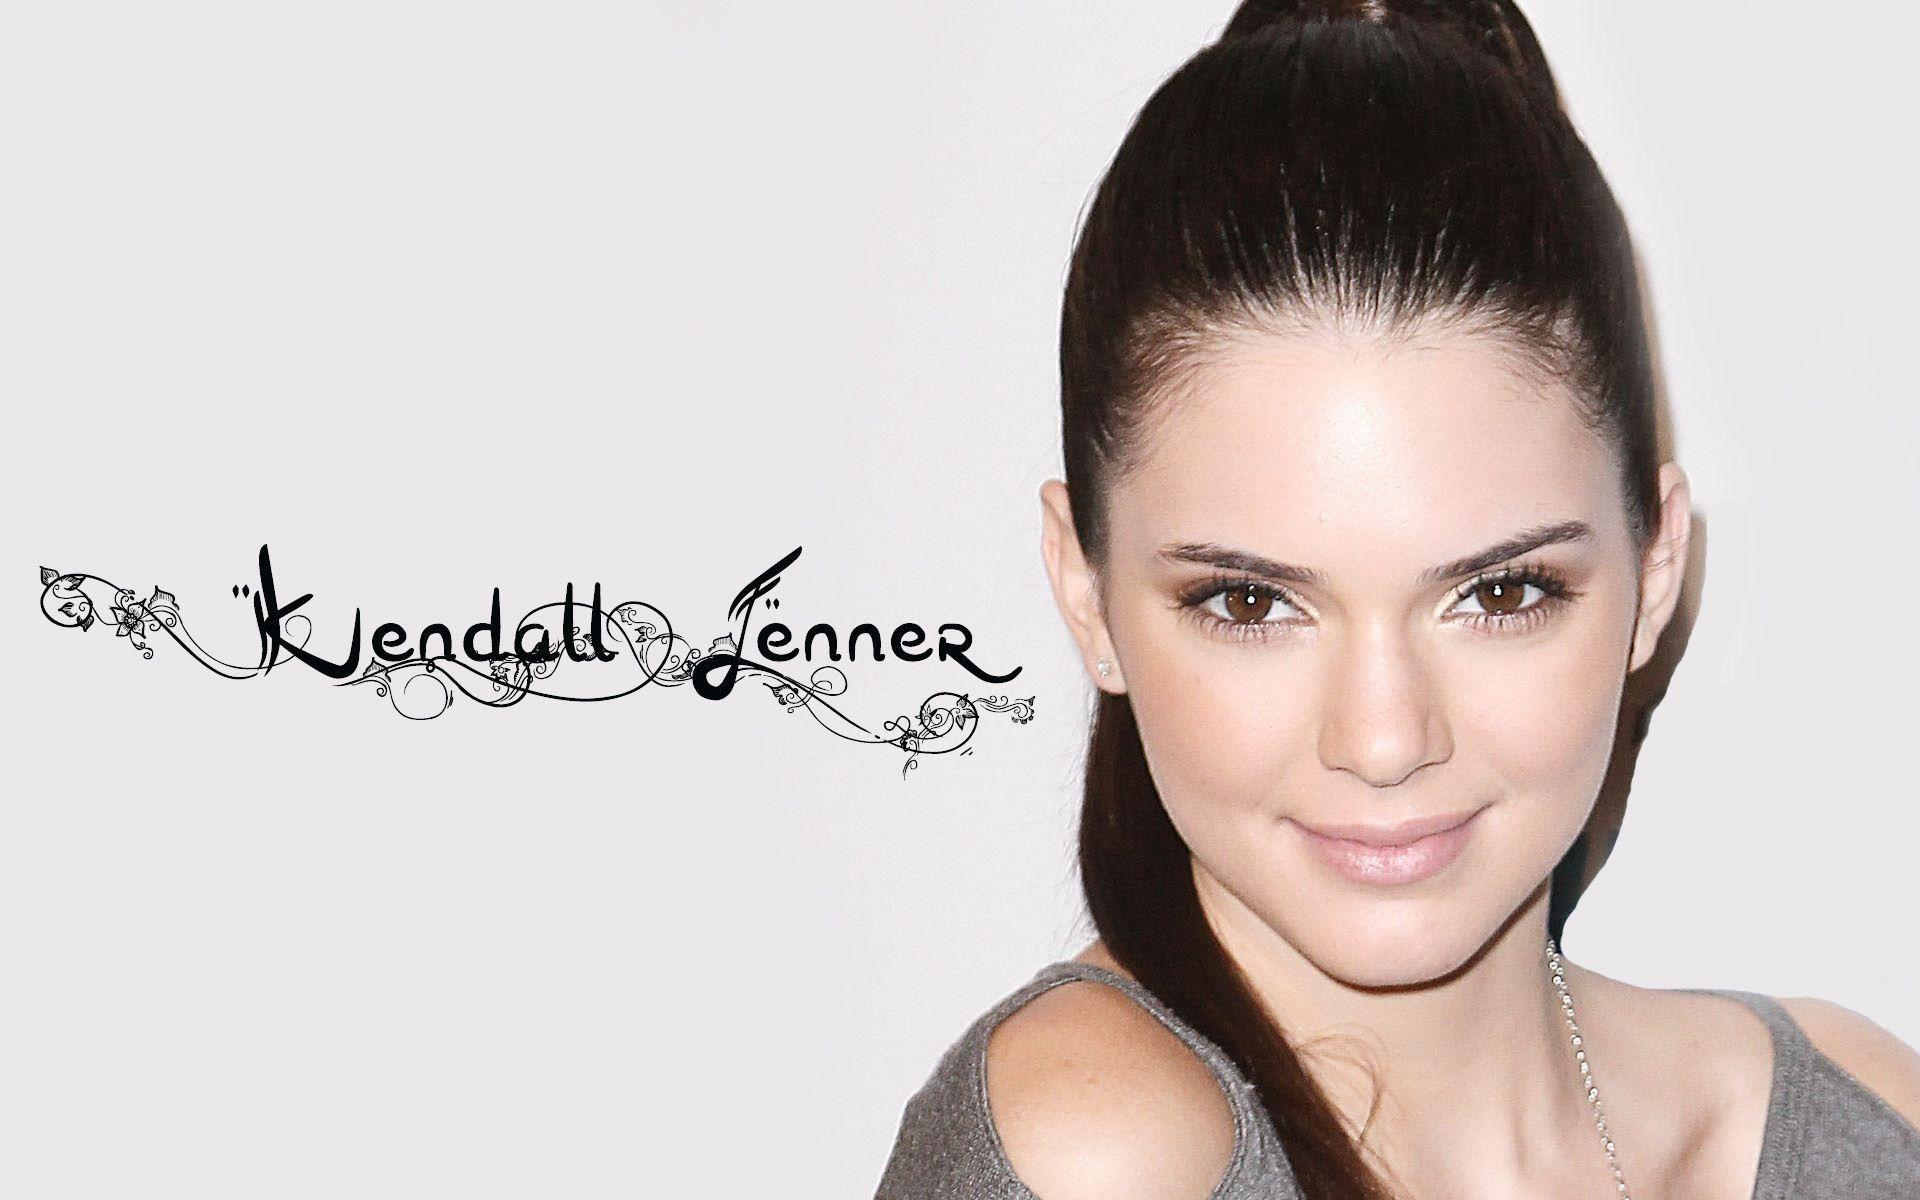 Kendall Jenner Wallpapers High Resolution and Quality Download